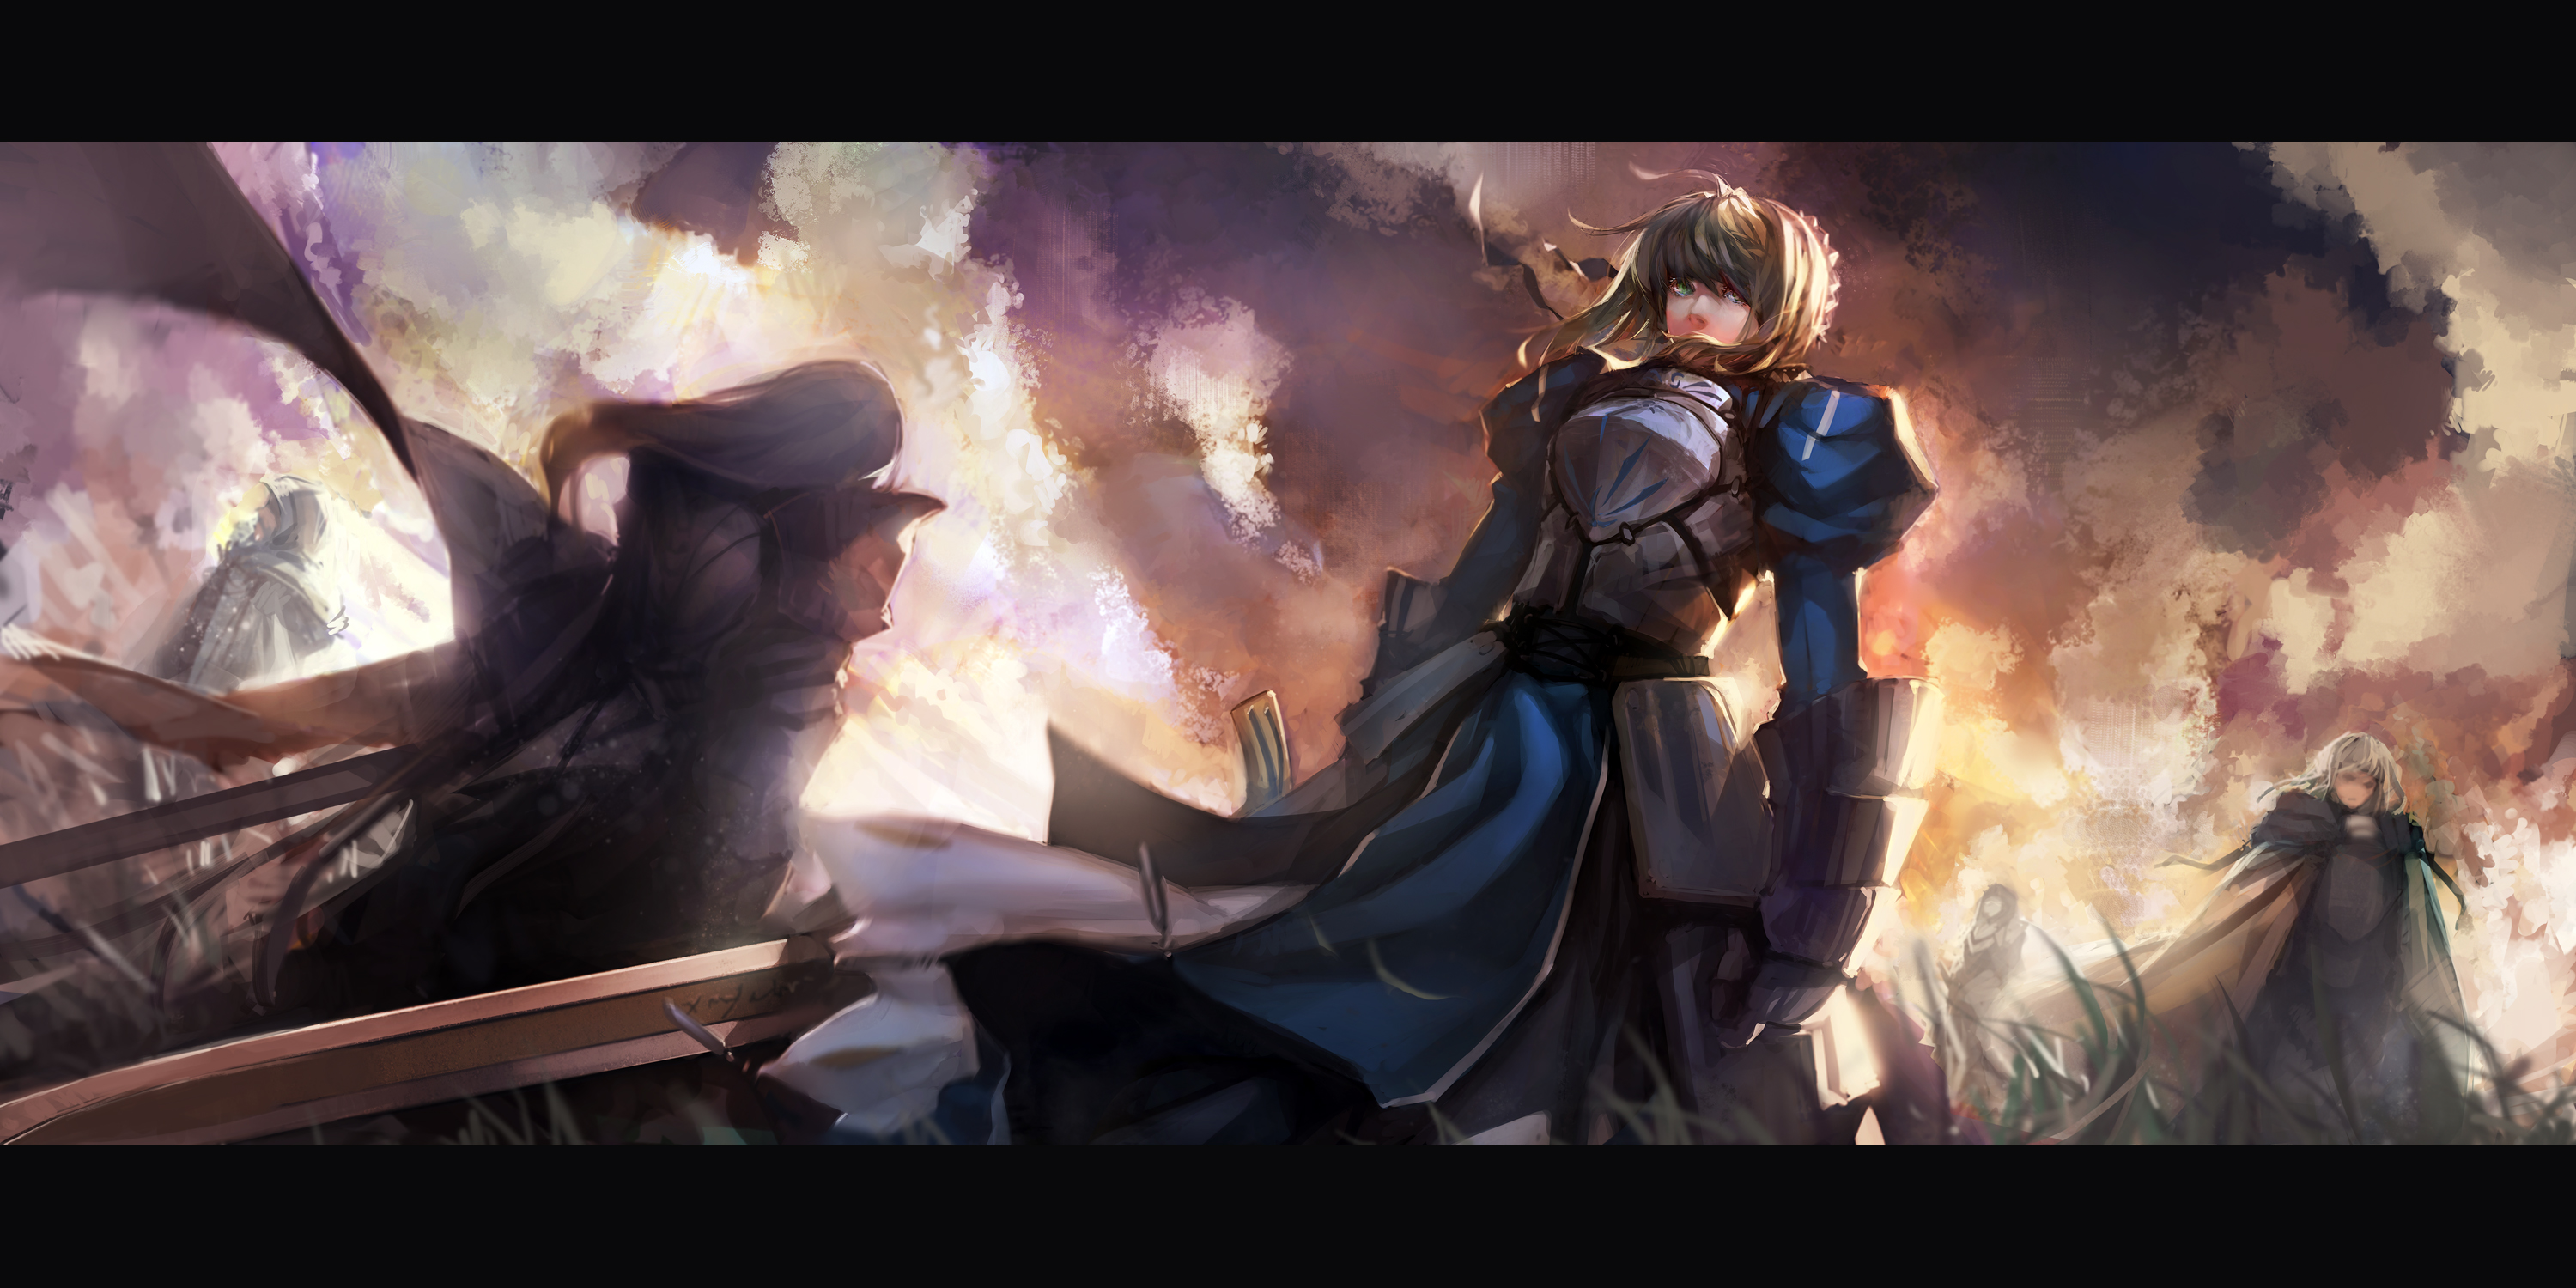 dress fate stay night fate zero saber sword weapon Randomness Thing 3000x1500